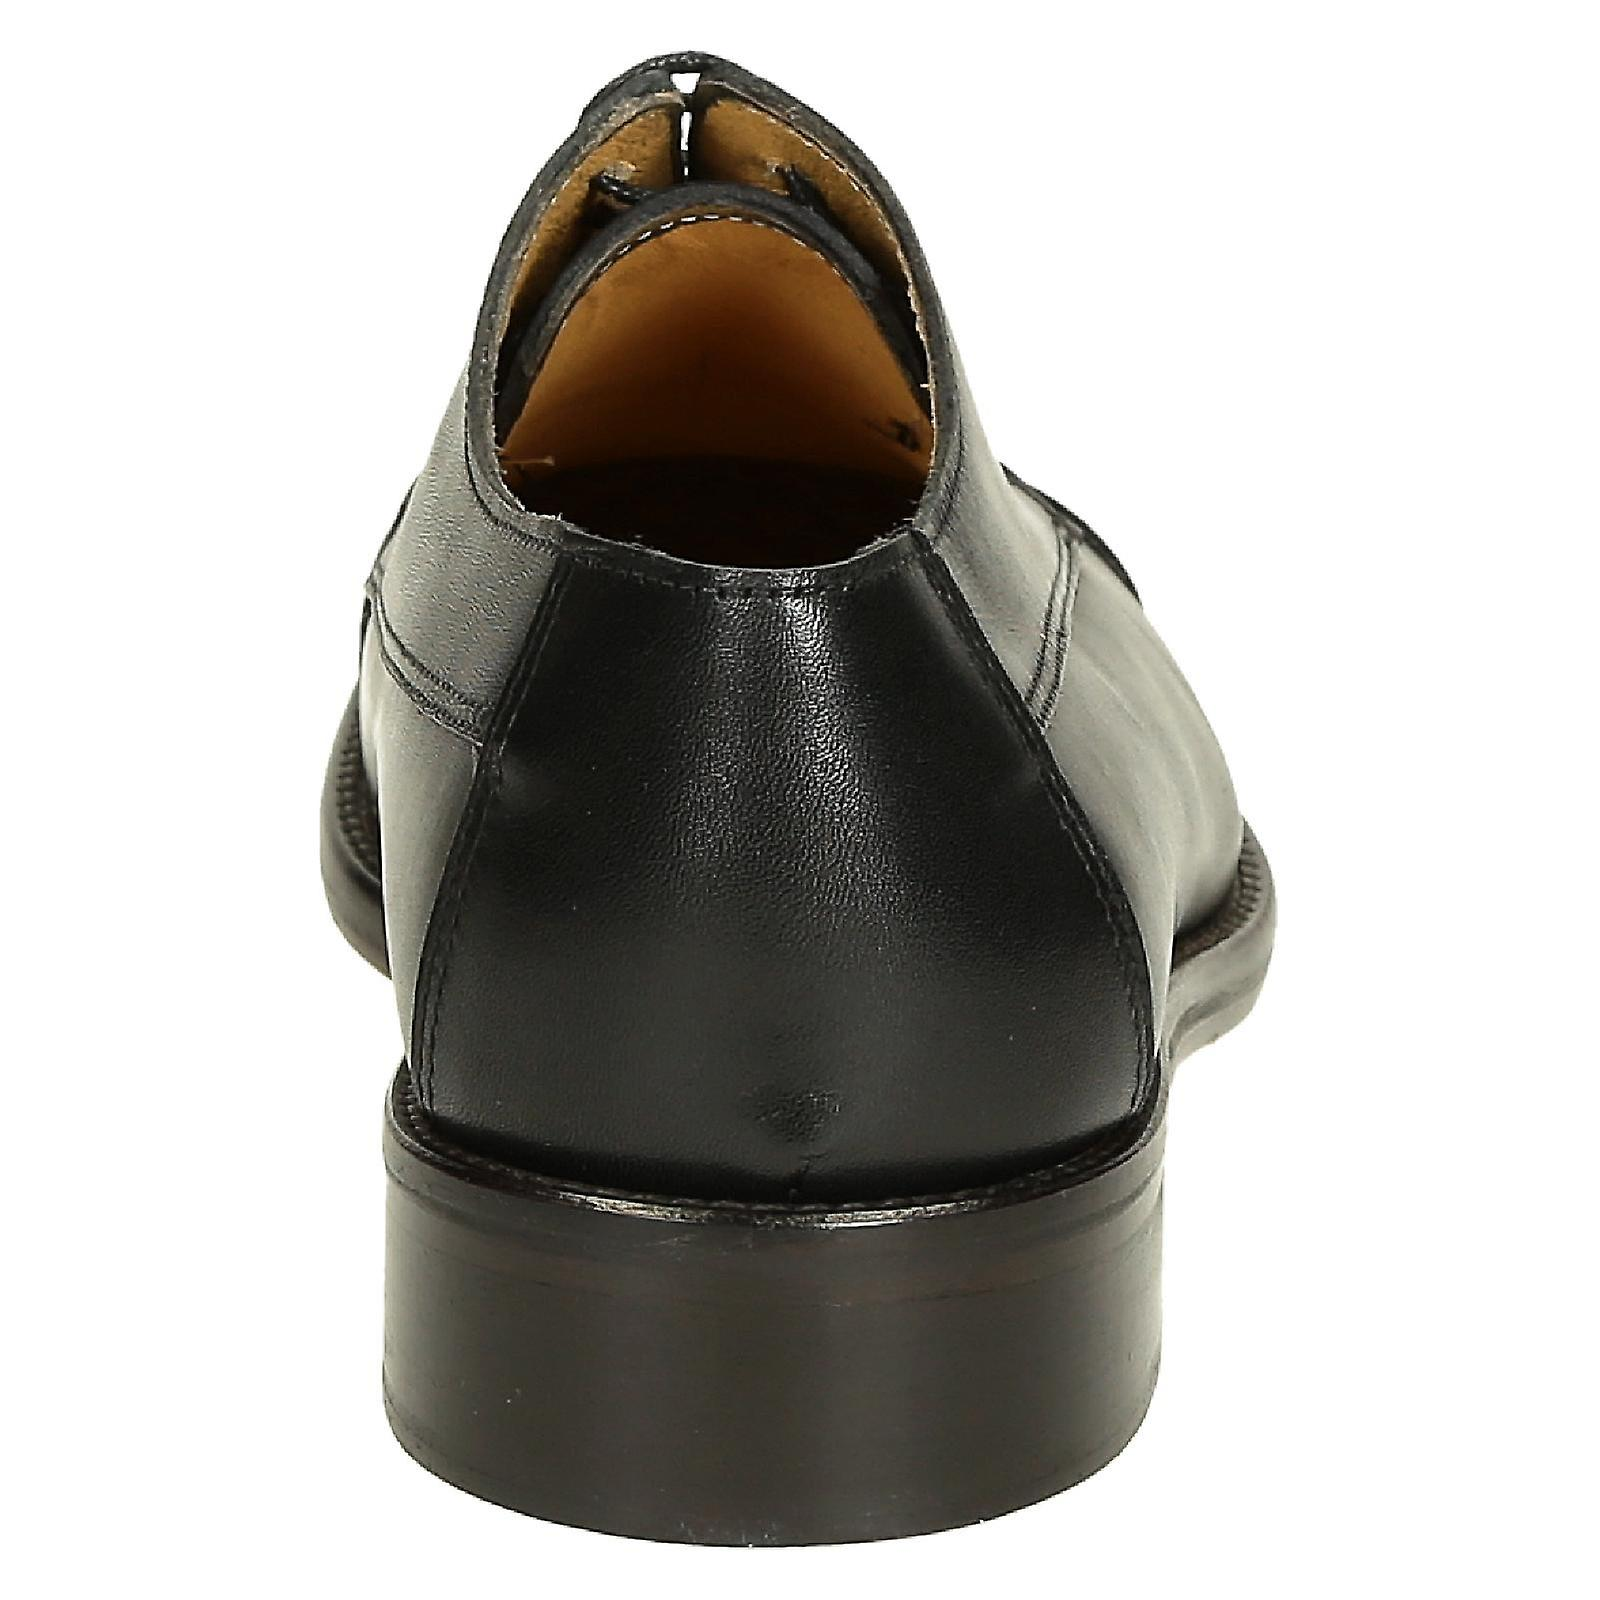 Black calf leather men's plain cap toe derby shoes